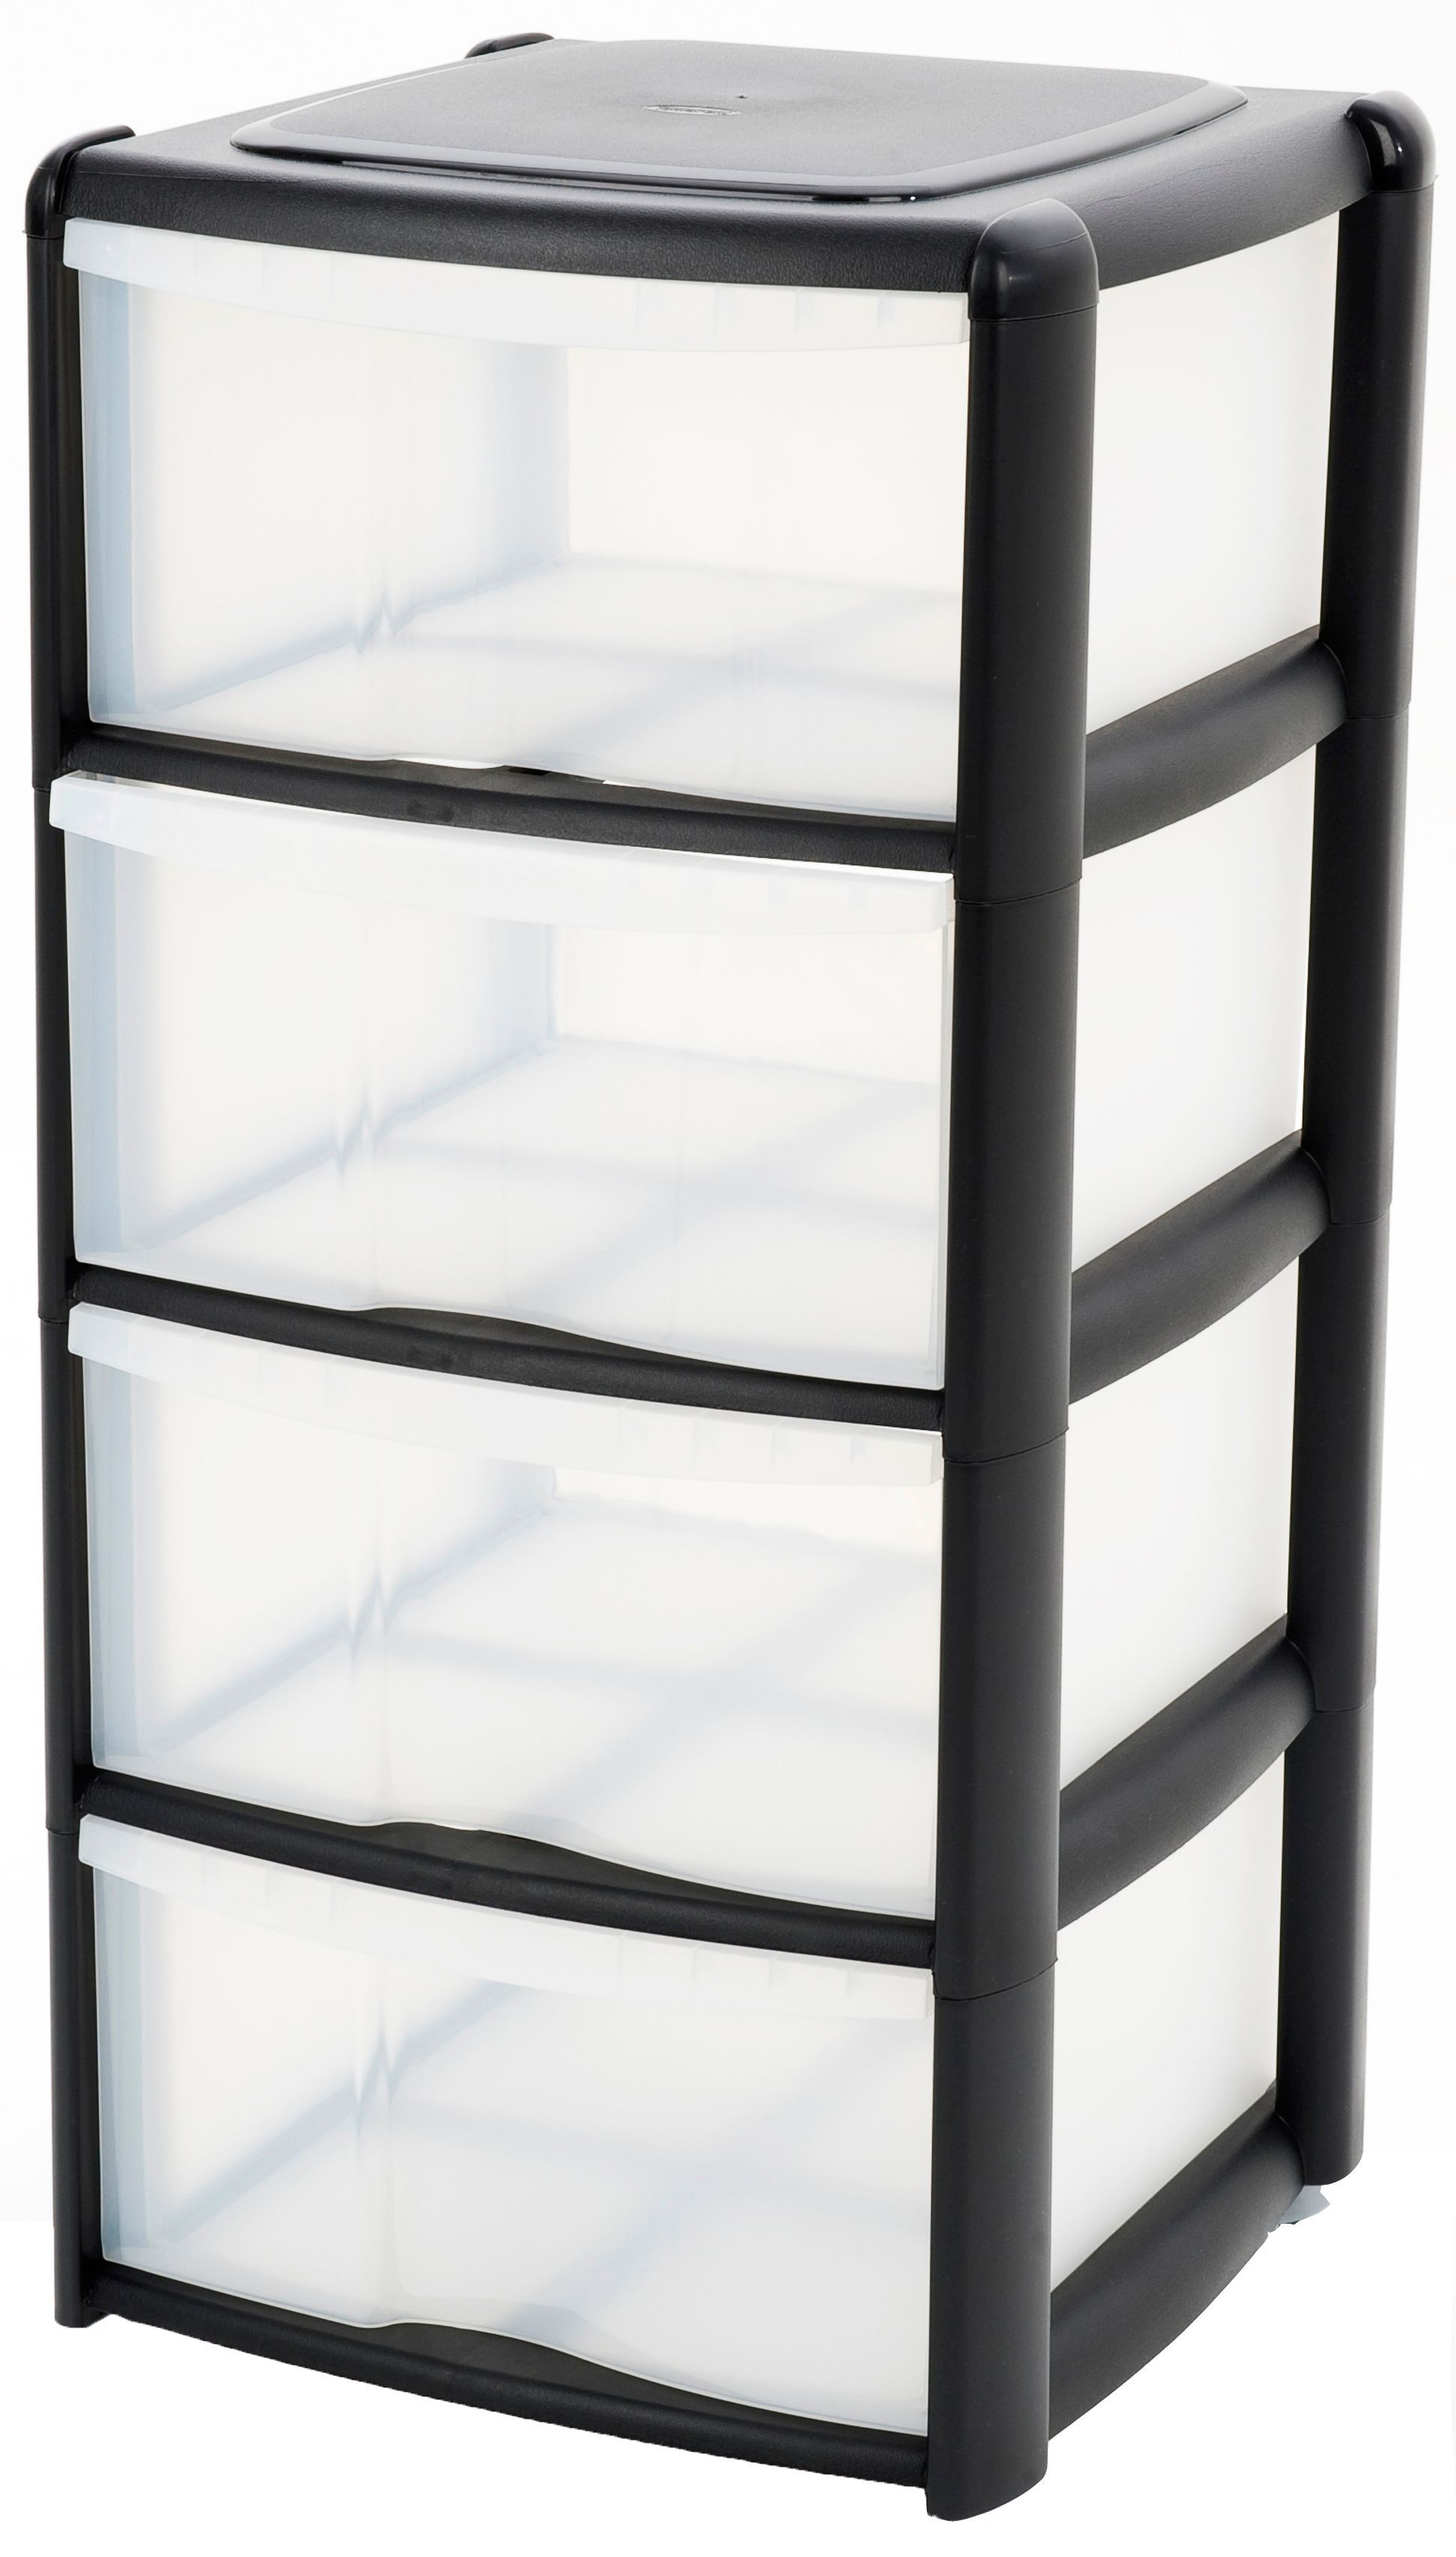 designs shelf bolt storage bins nut and drawer of drawers plastic design